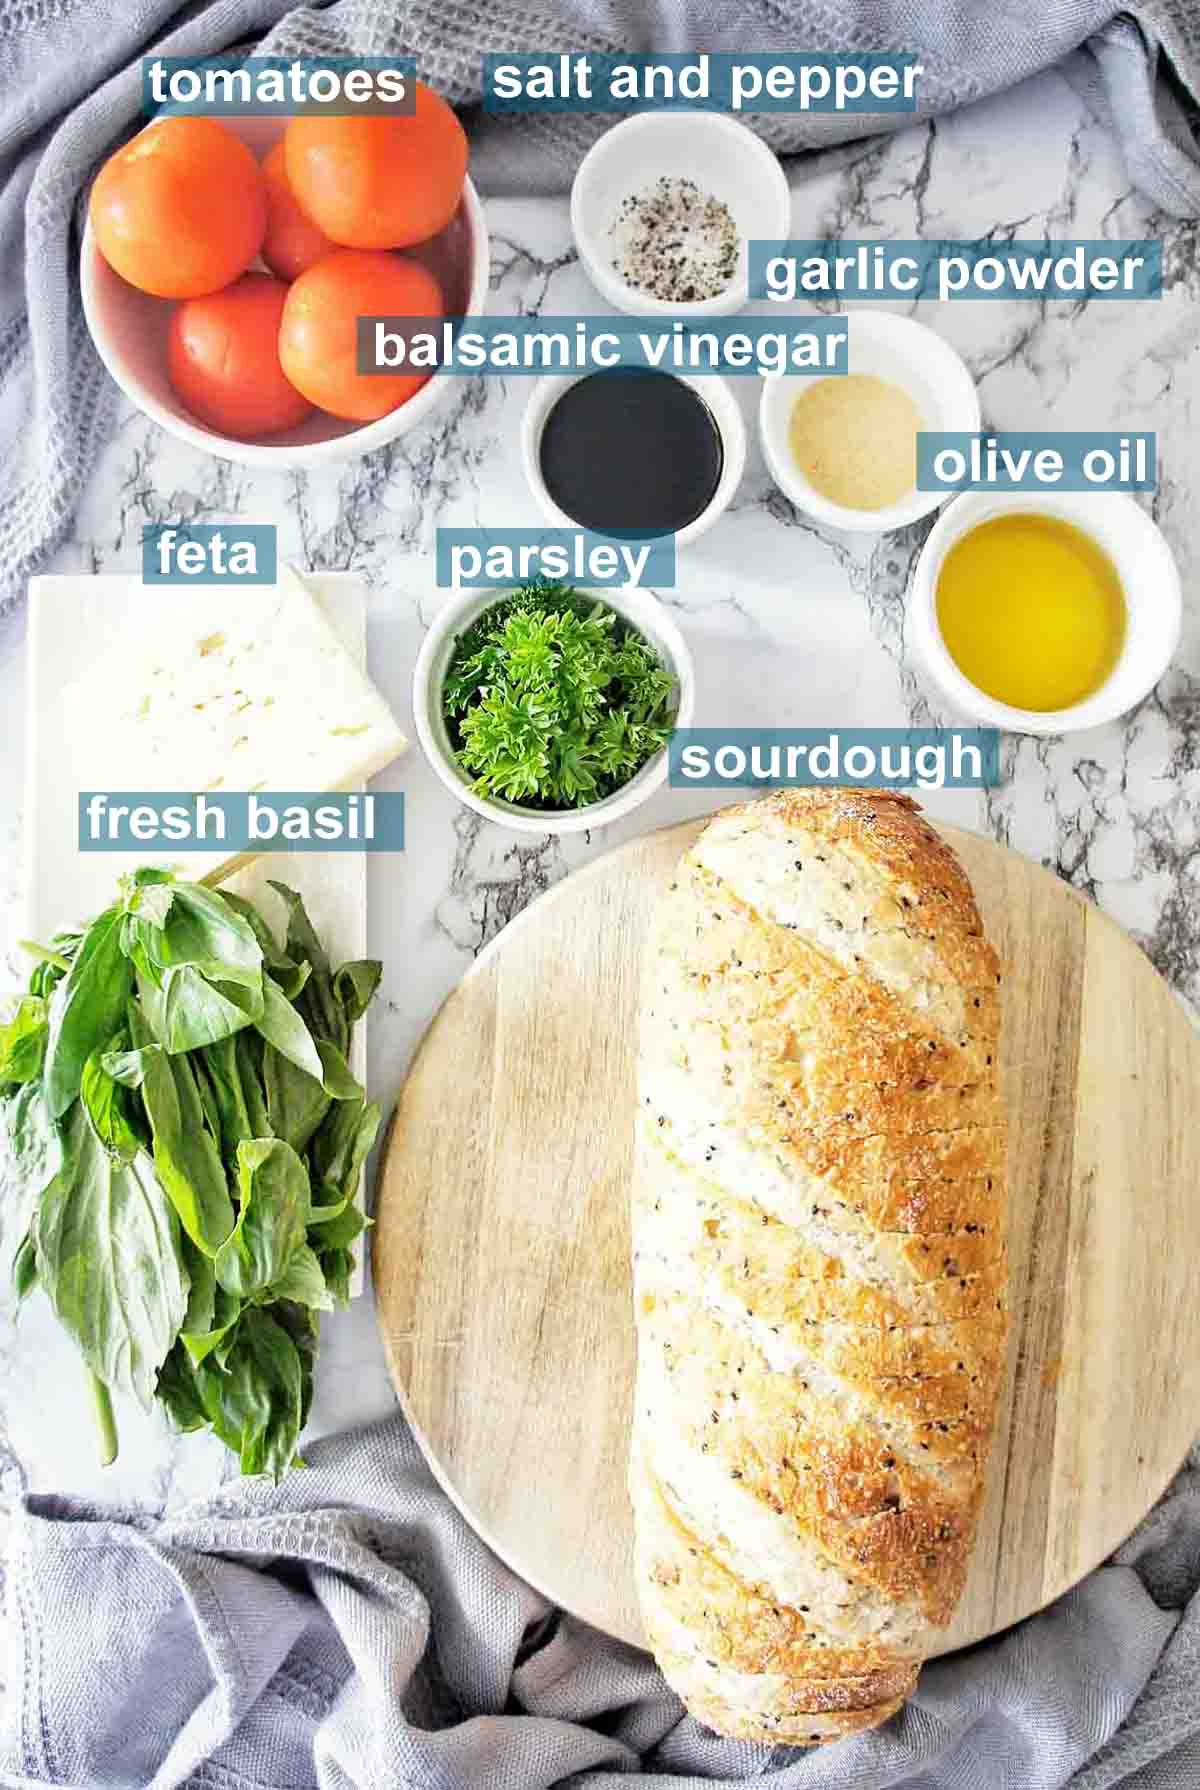 Ingredients for bruschetta with feta and text overlay